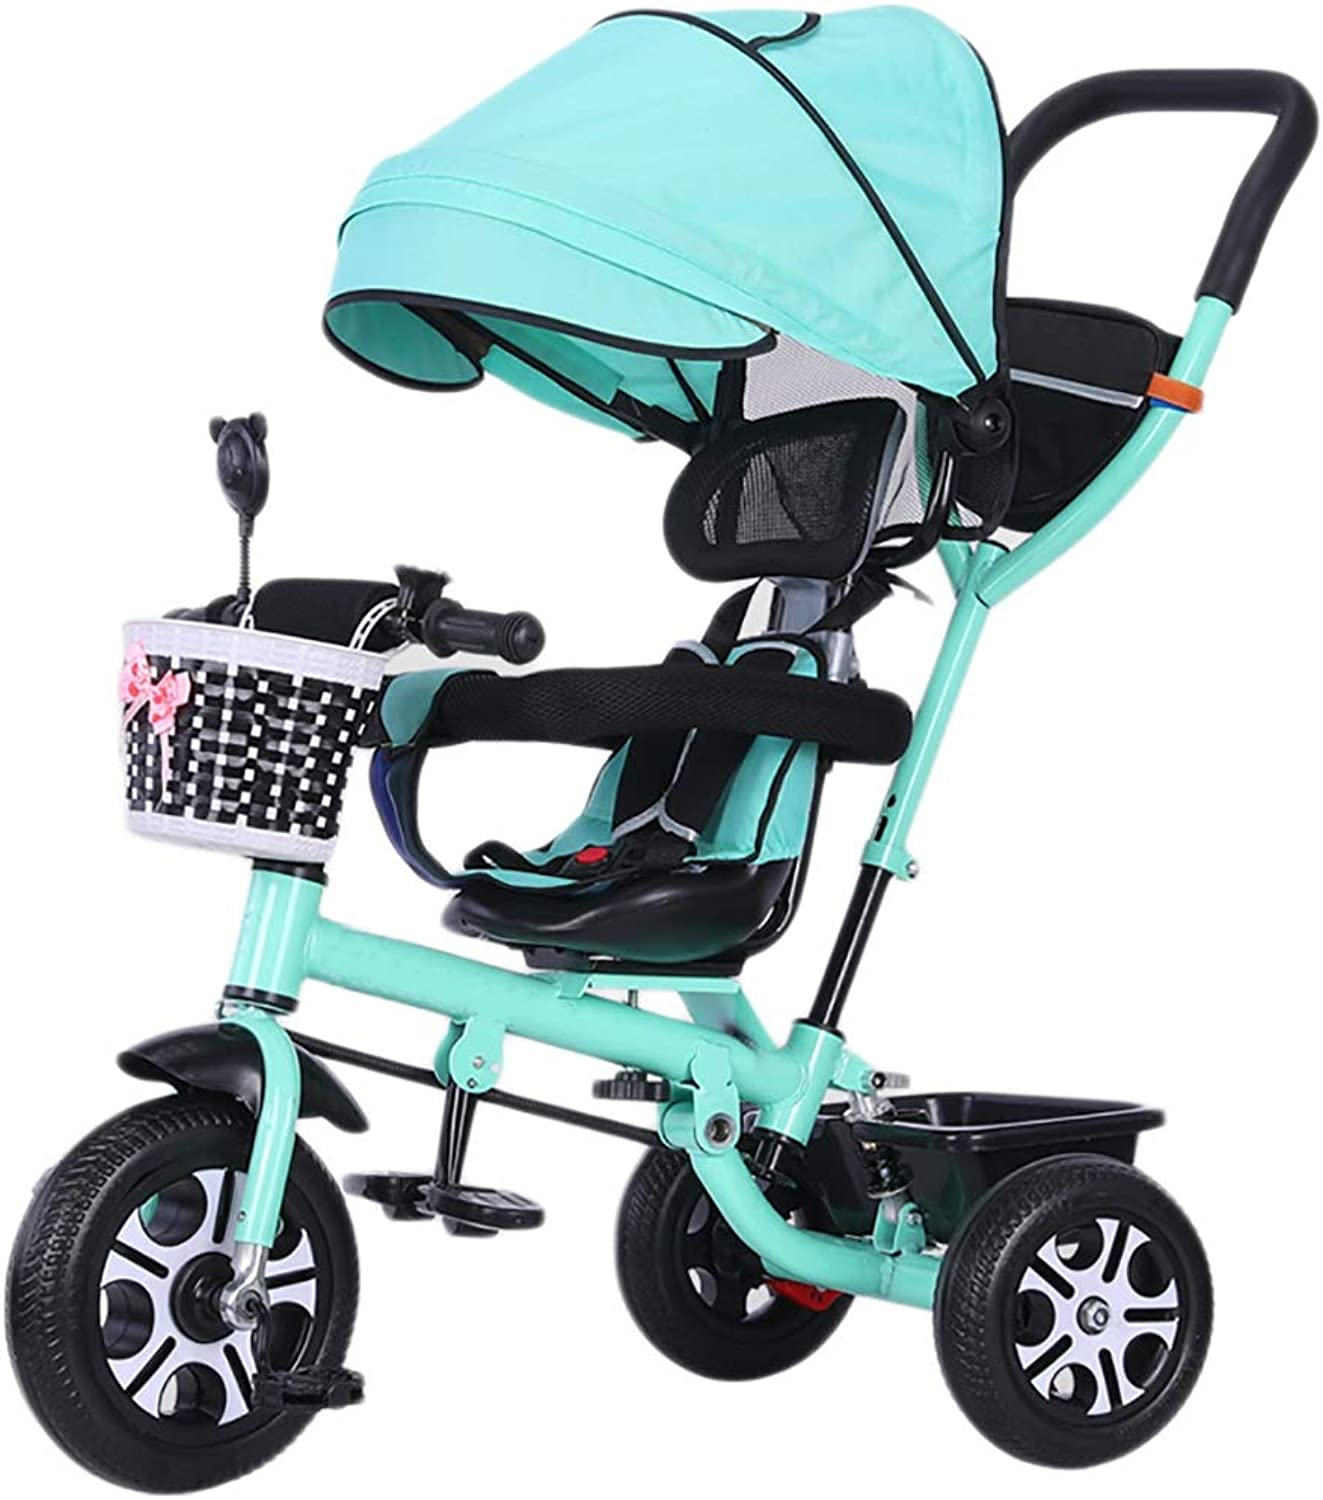 NBgy Tricycle, Easy to Fold redating Multi-Function 4 in 1 Tricycle Portable, 1-6 Year Old Baby Outdoor Tricycle, 3 colors, (100-105) X76x60cm